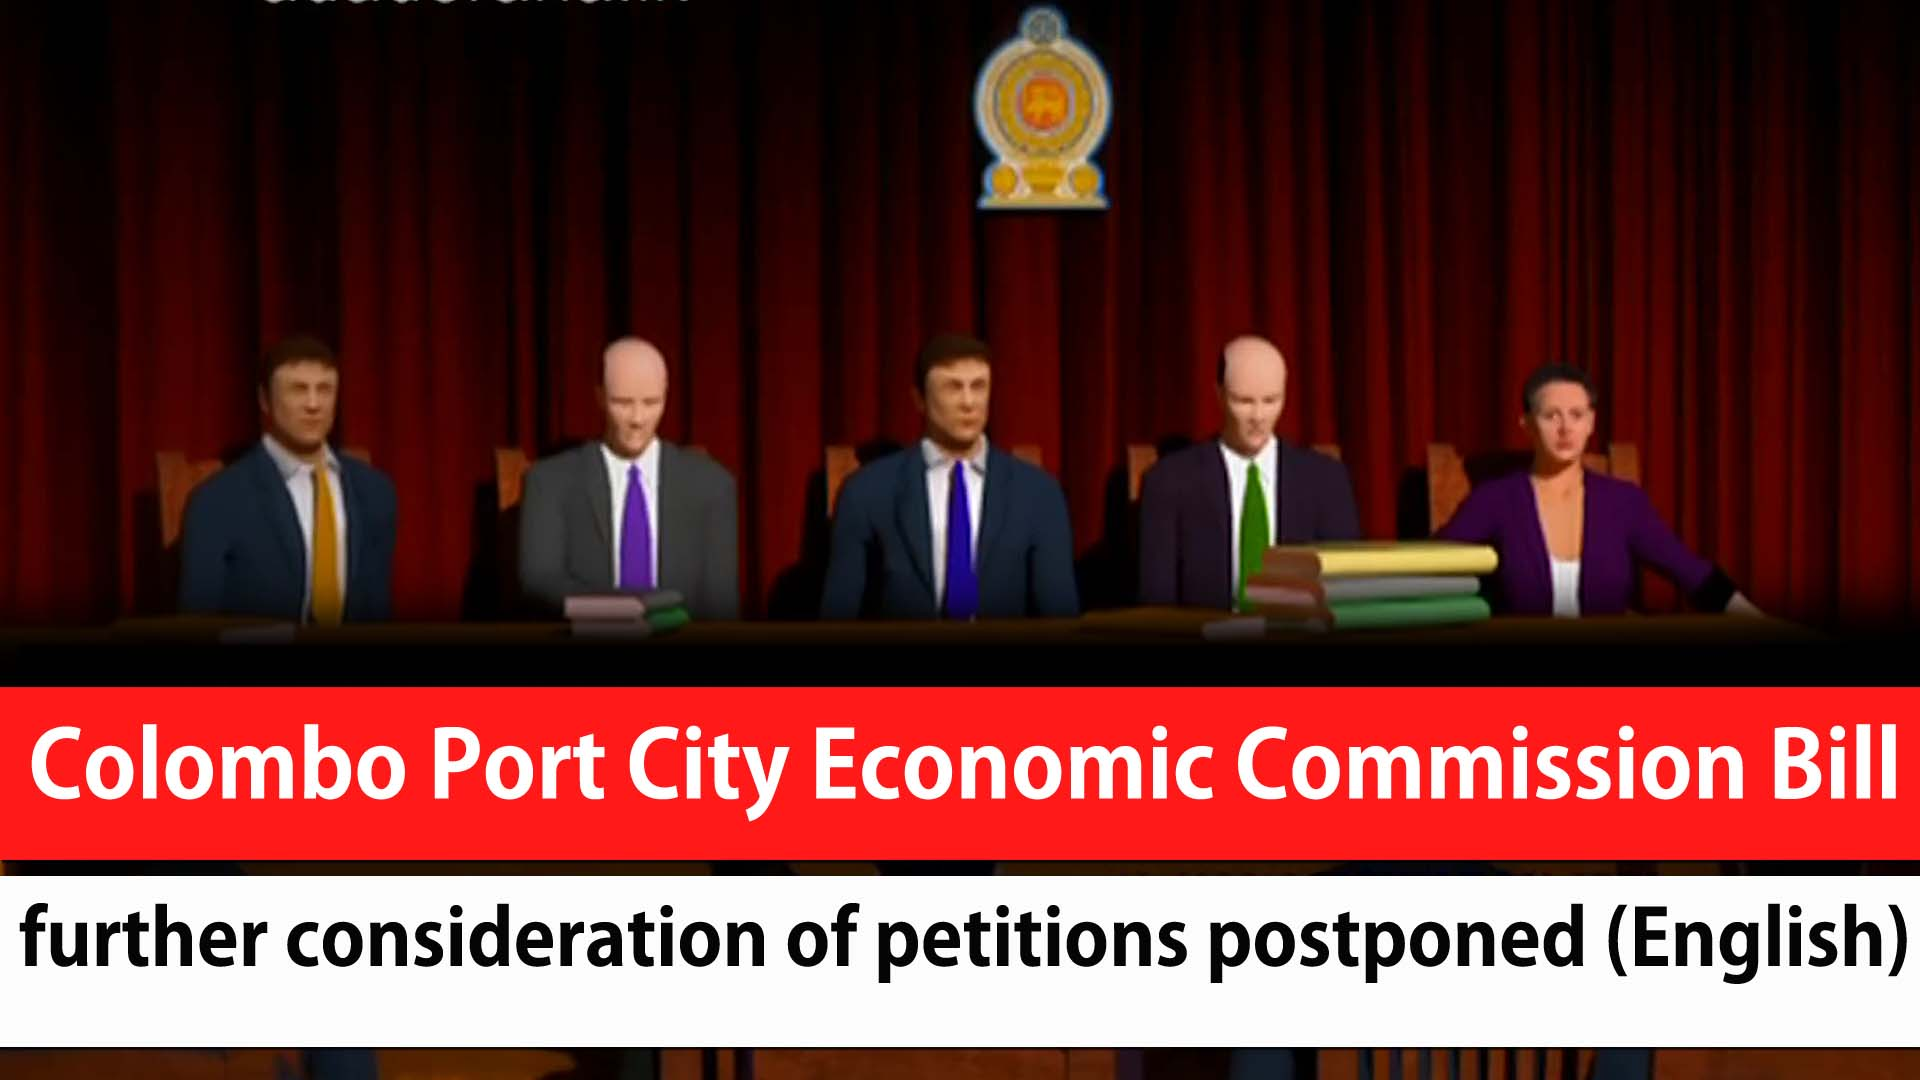 Colombo Port City Economic Commission Bill: further consideration of petitions postponed (English)